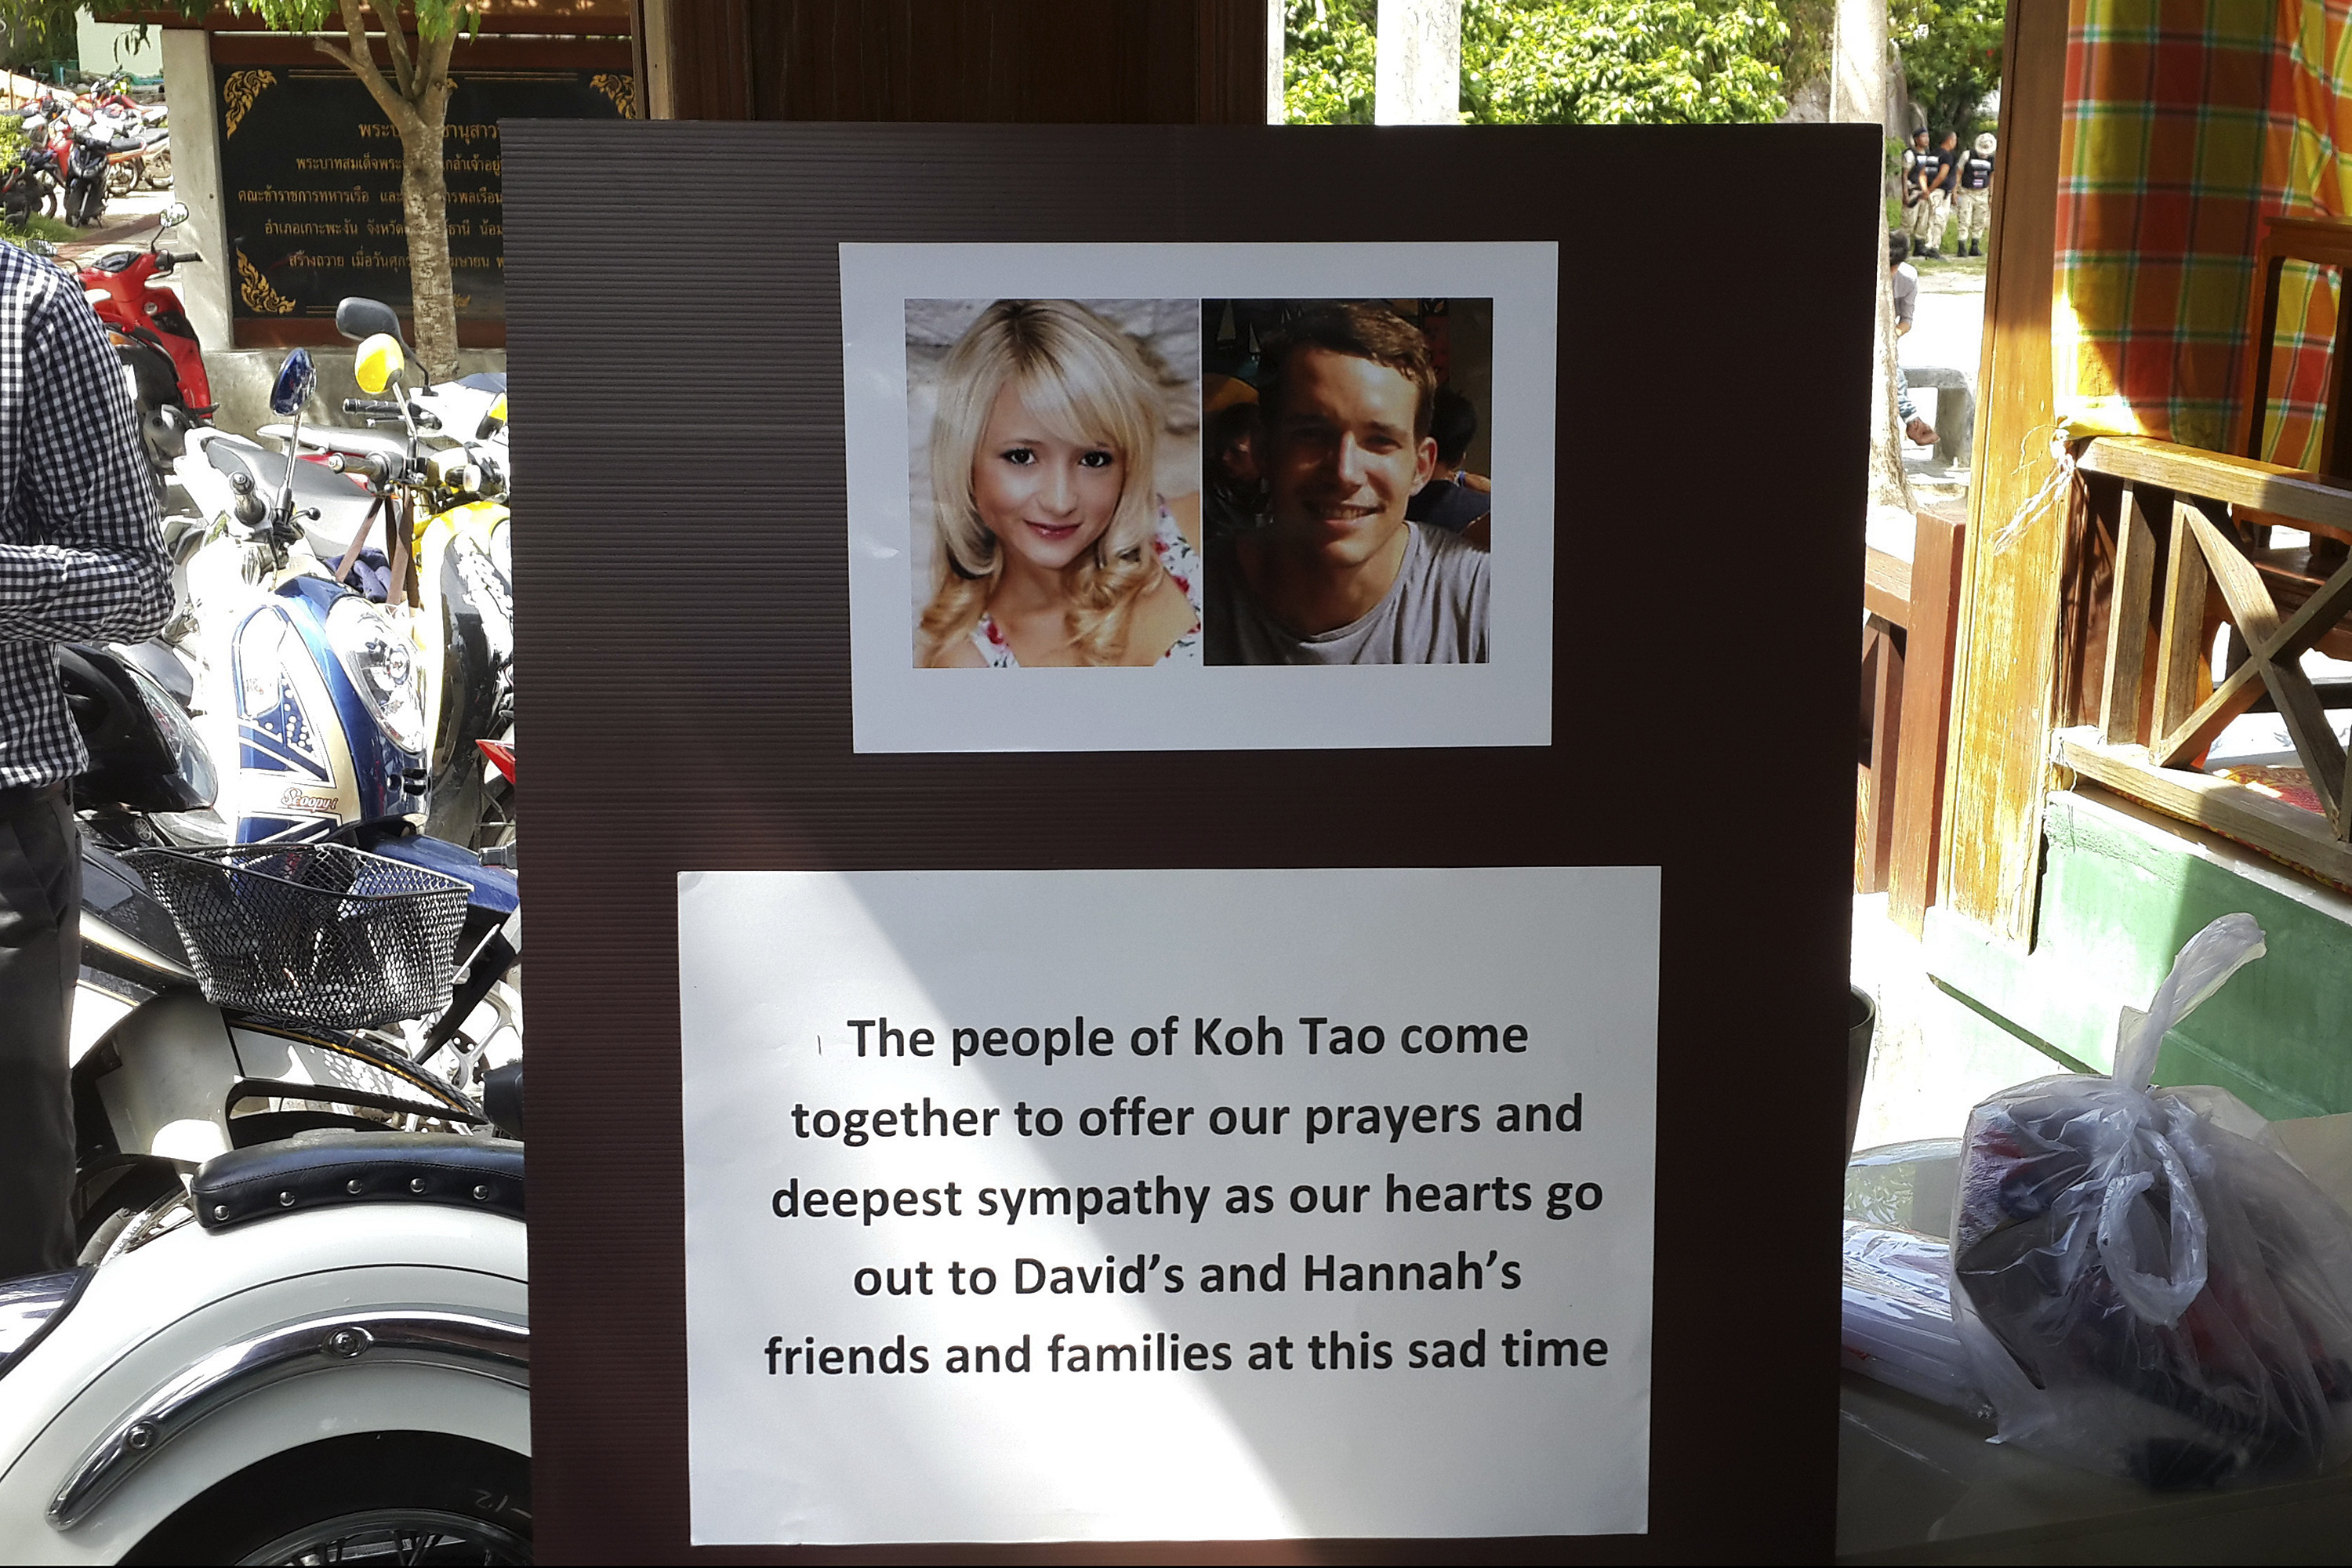 Pictures of killed British tourists David Miller and Hannah Witheridge and a message of support to their friends and families are displayed during special prayers at Koh Tao island on Sept. 18, 2014